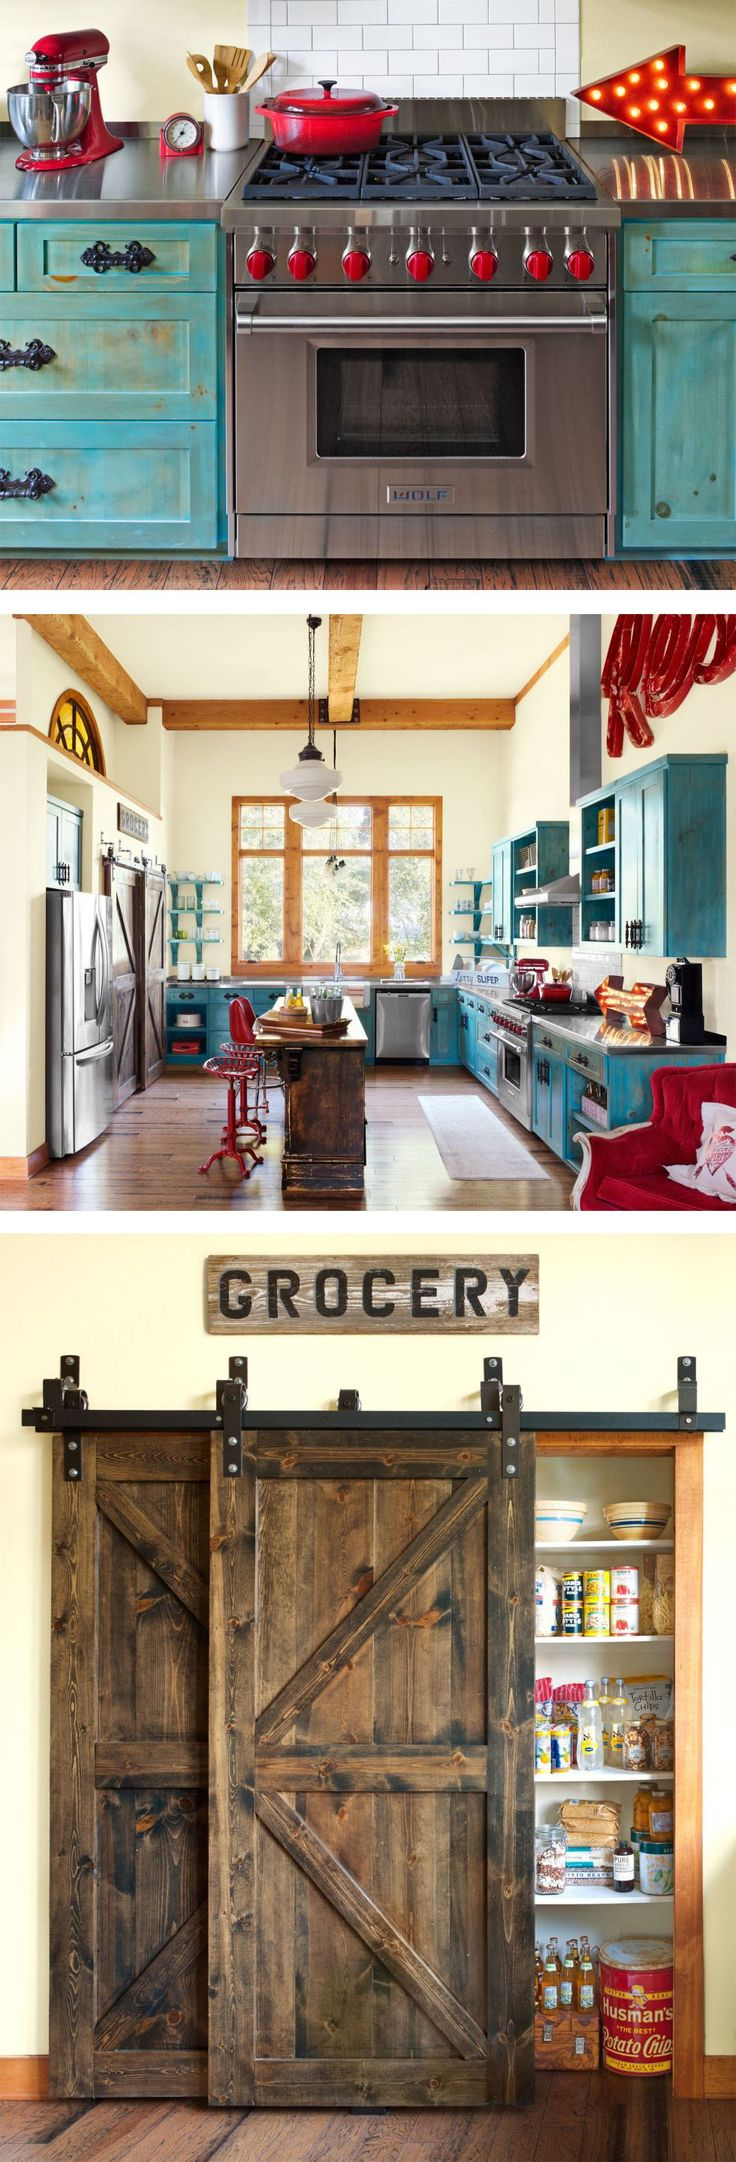 Best 25+ Vintage kitchen ideas on Pinterest | Cozy apartment decor ...